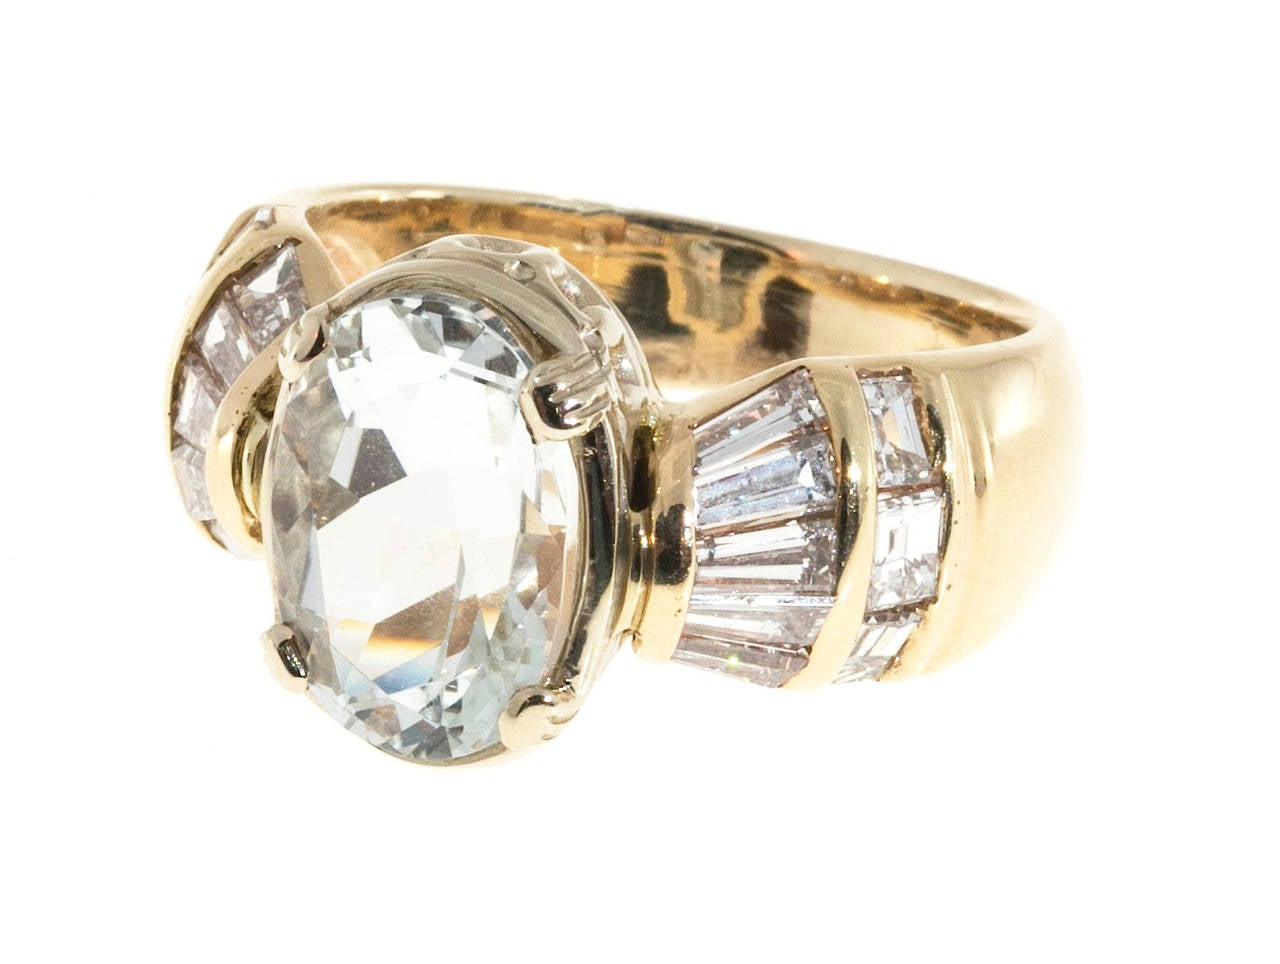 Clear Pale Blue Aquamarine Diamond Gold Tapered Baguette Ring For Sale 2